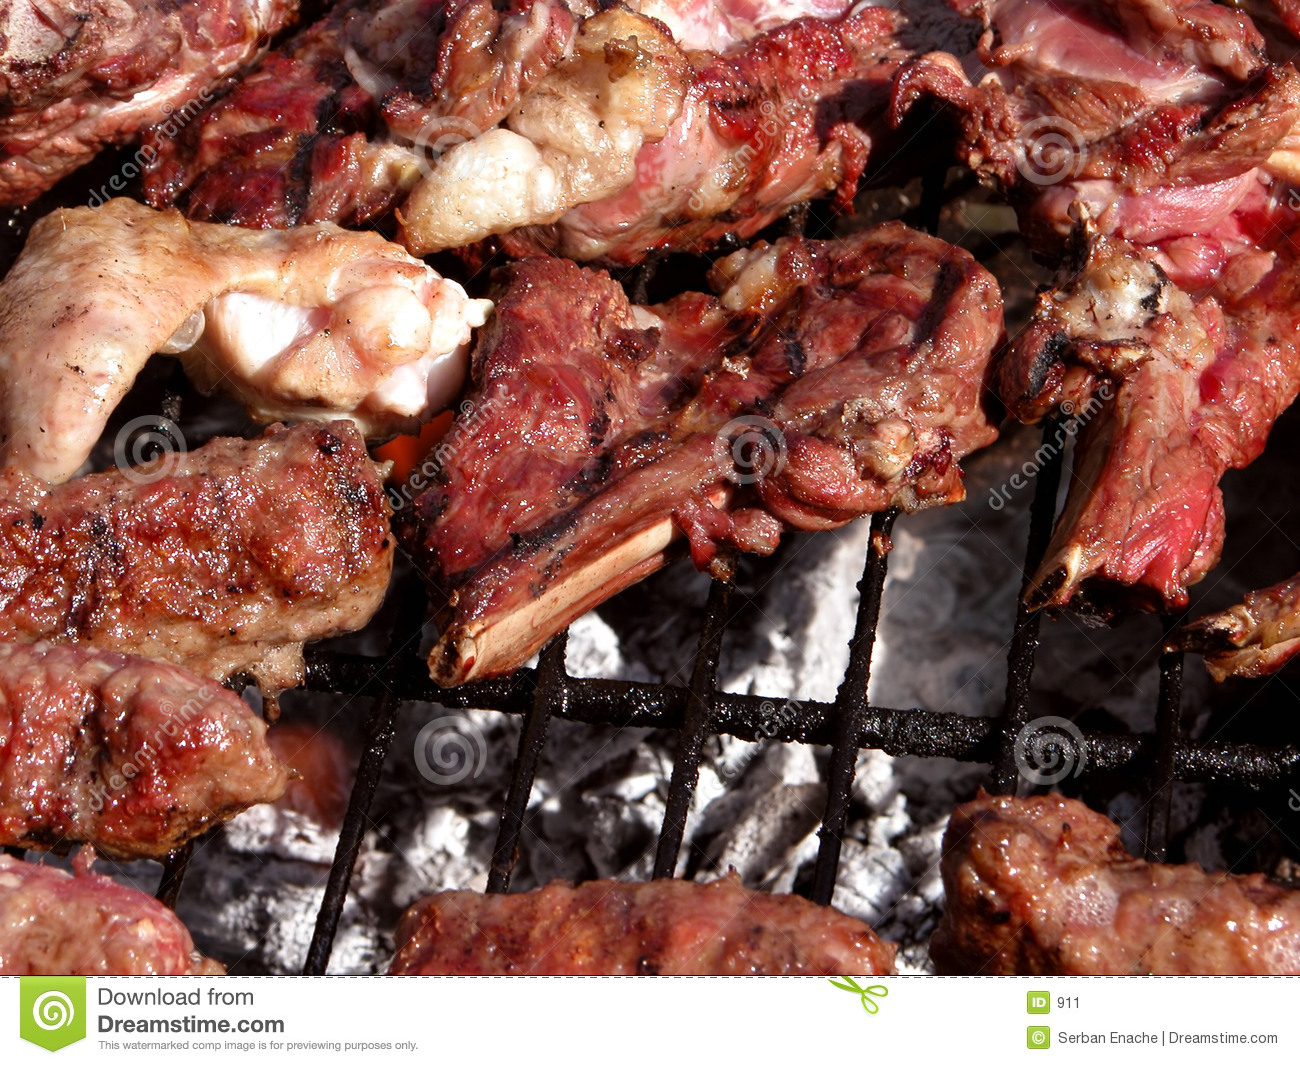 Grillad meat